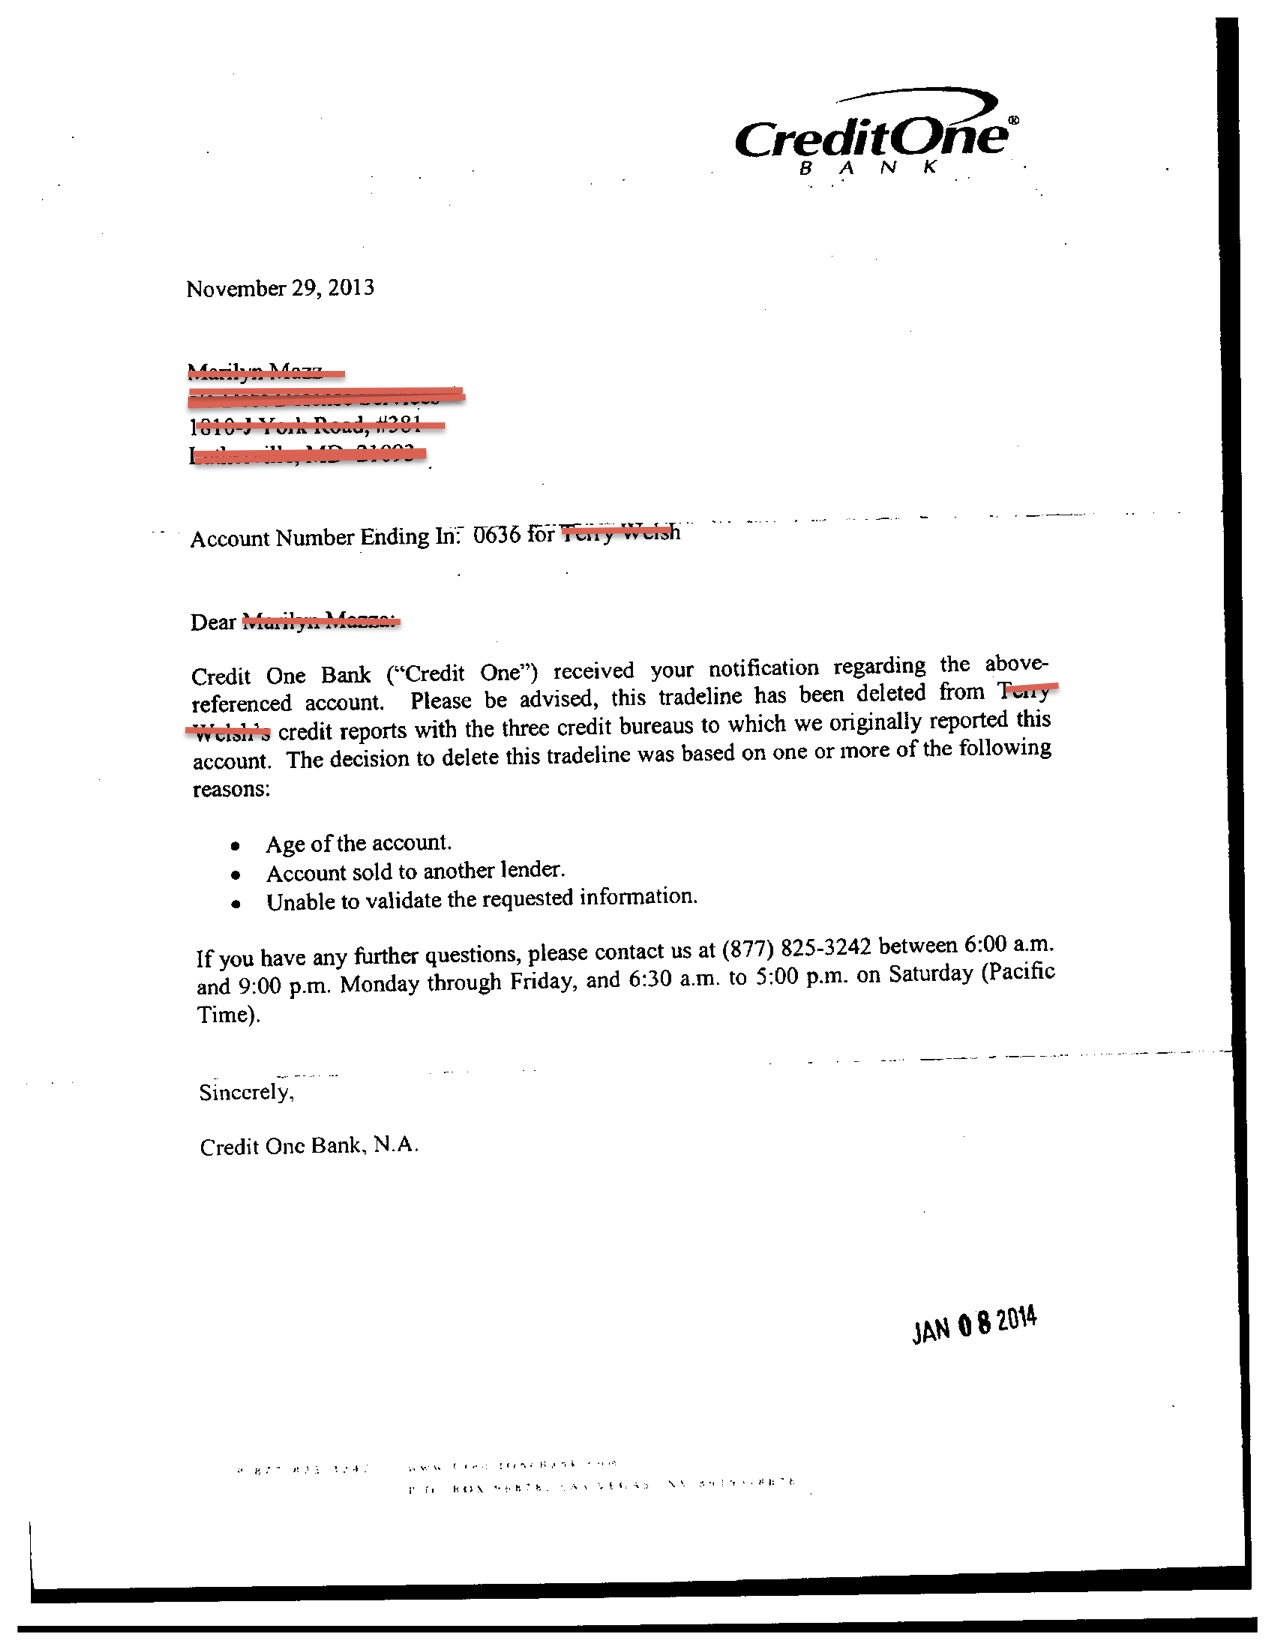 Sample Letter For Disputing A Debt Collection Notice from nomorecreditcards.com